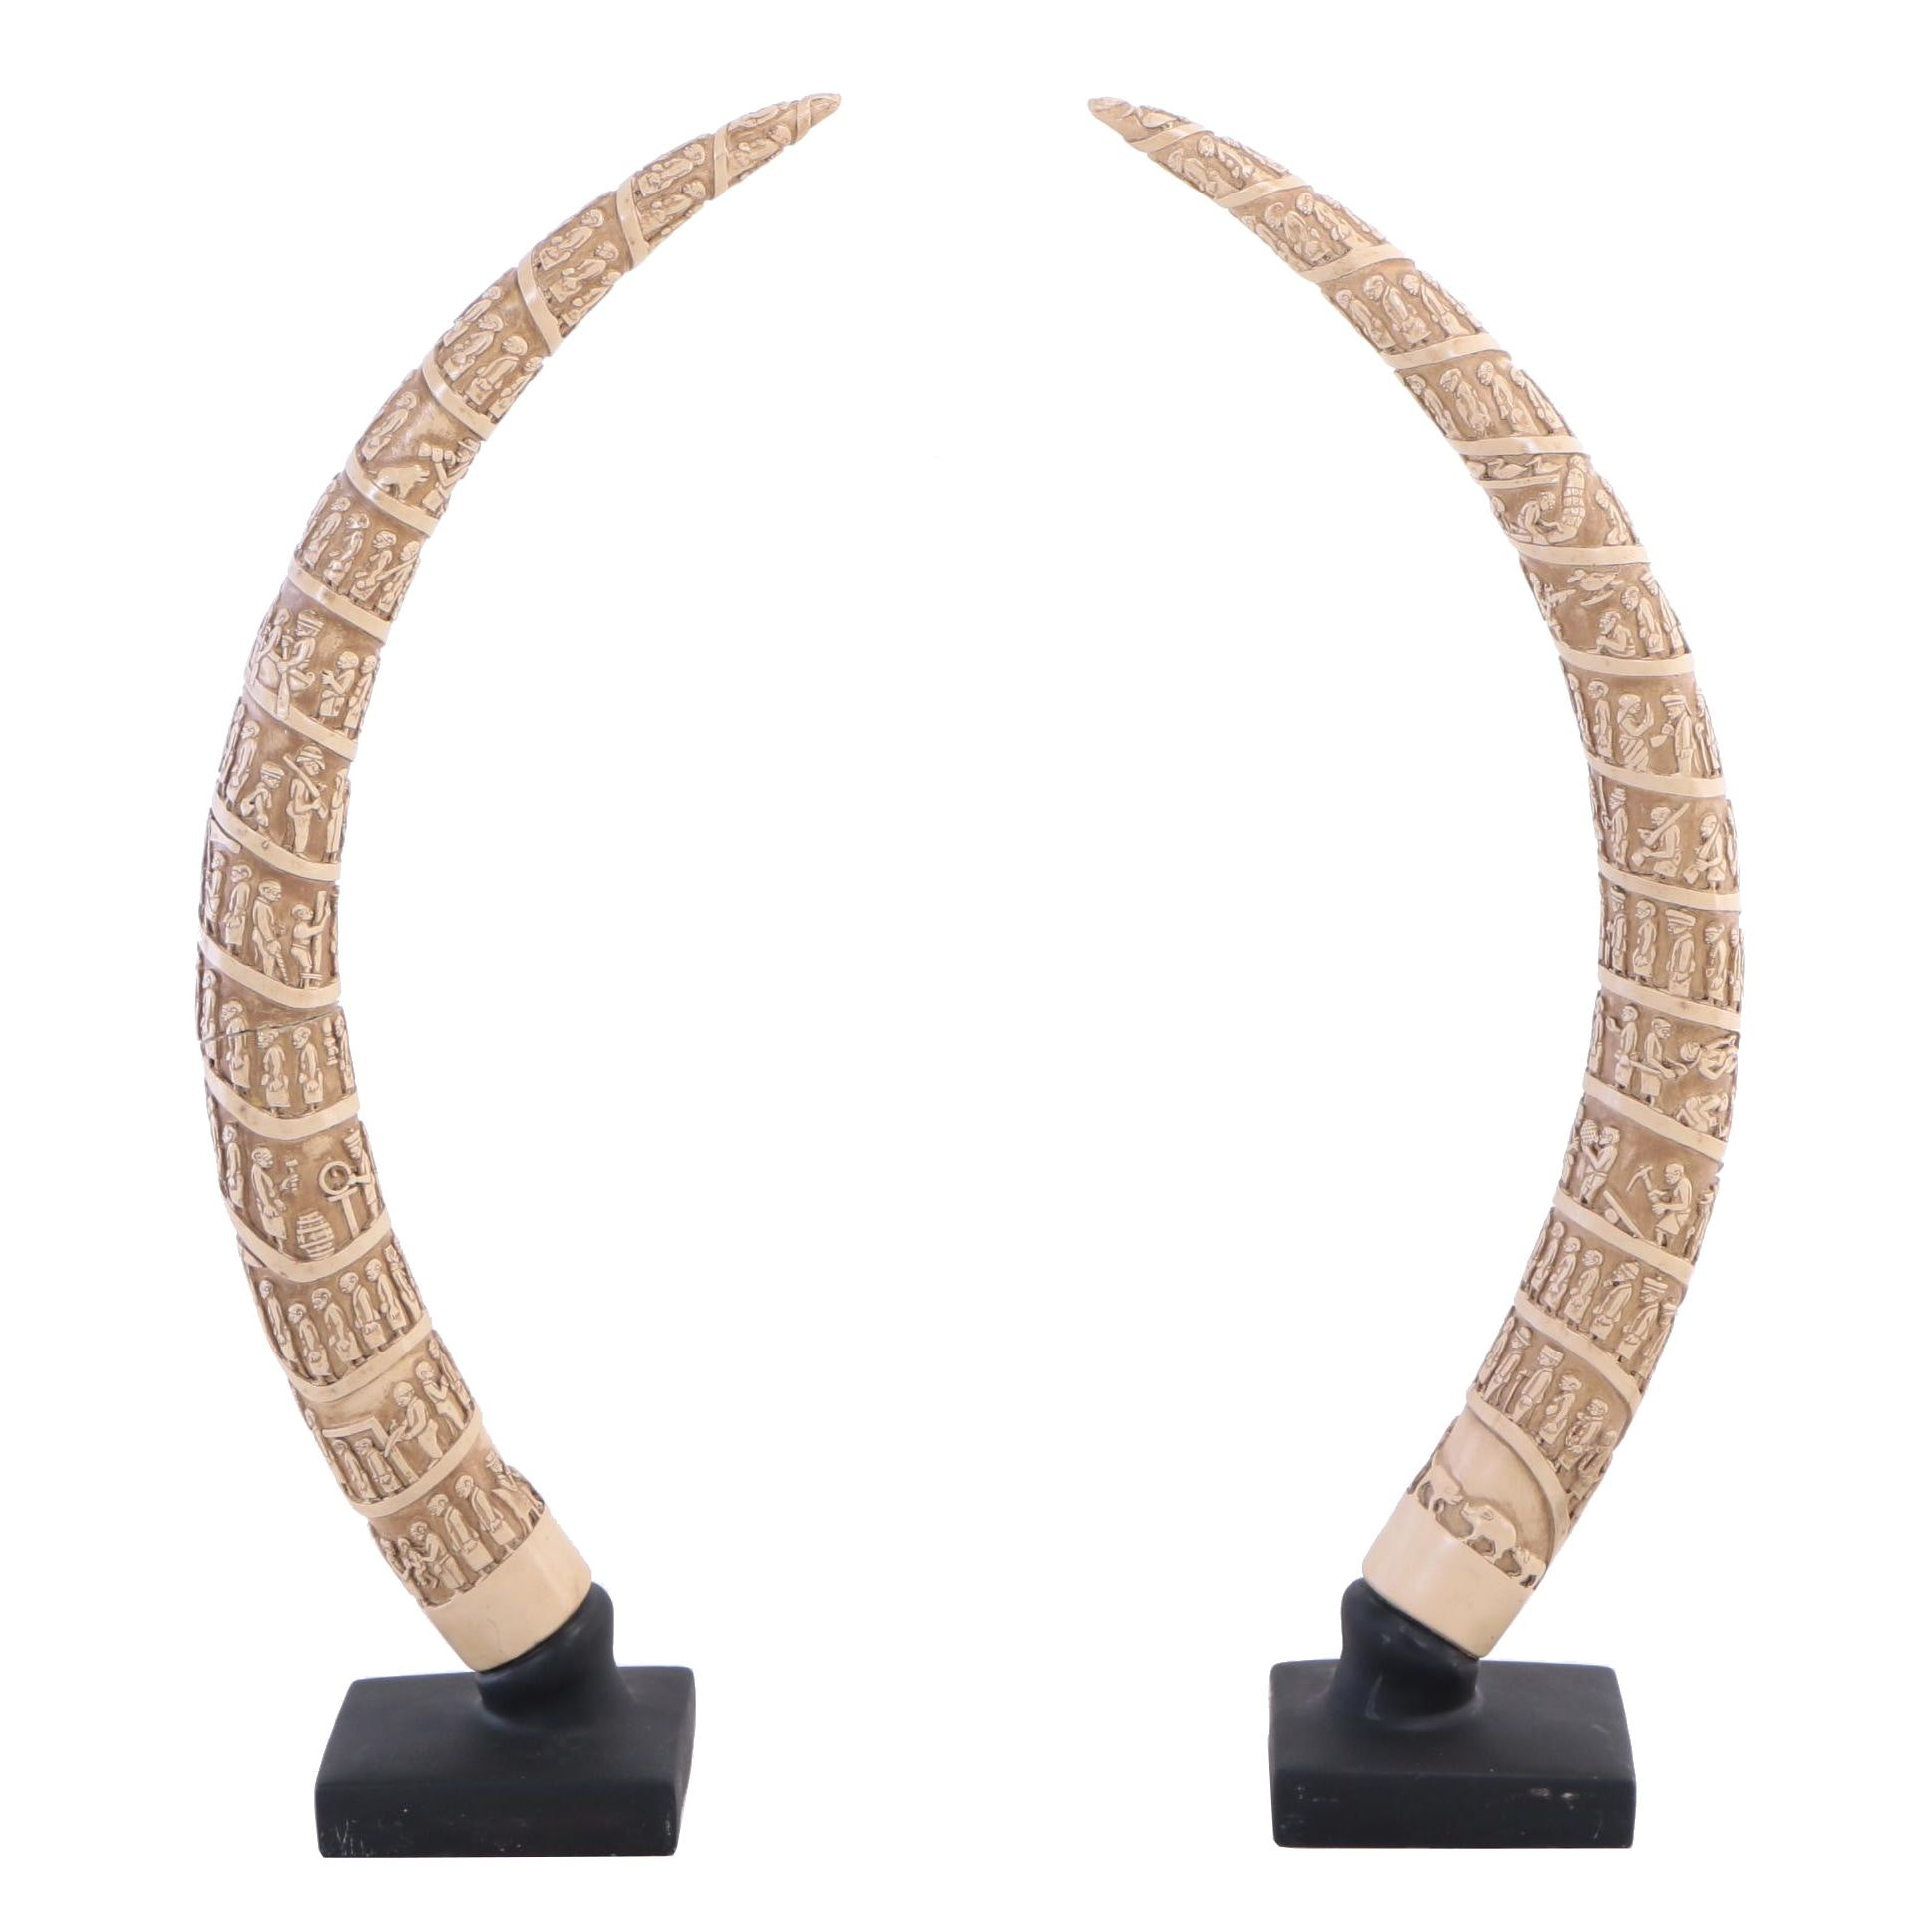 Pair of Austin Productions Inc., Faux-Ivory Museum Replica Tusks